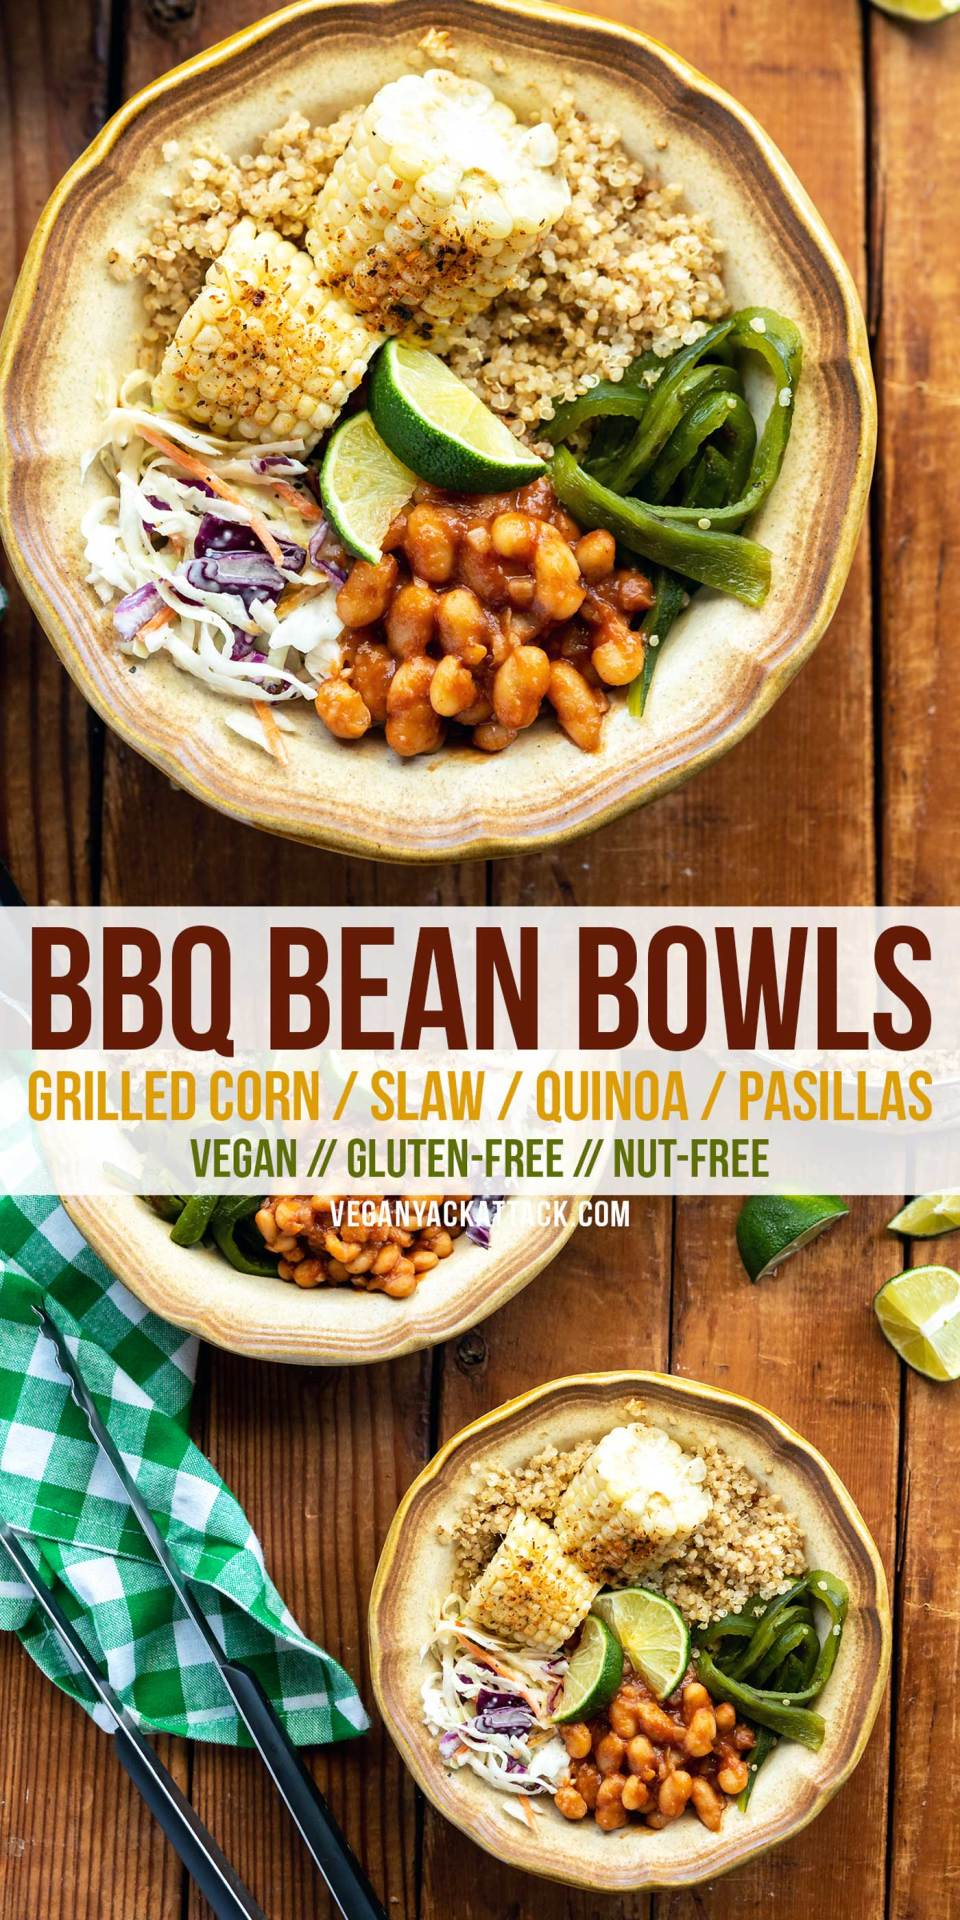 Just in time for summer, these #vegan BBQ Bean Bowls are a sampler of everything you love at a cookout! Grilled corn and pasilla peppers, coleslaw, quick bbq beans, plus, some cumin-spiced quinoa to make it a well-rounded meal. #glutenfree #plantbased